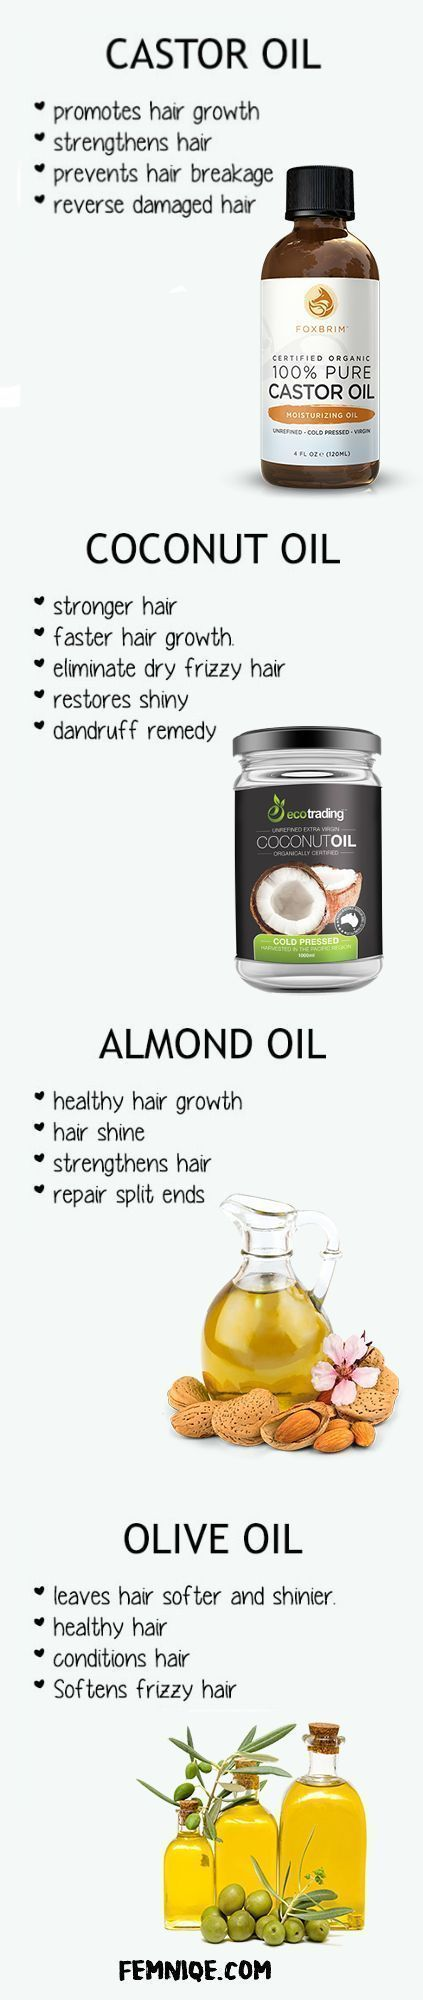 What Makes Your Hair Grow Faster? These 10 Things | remedies for hair loss in women | coconut, almomd and olive oil hair loss | grow your hair faster | remedies to grow your hair longer #haircareoil,